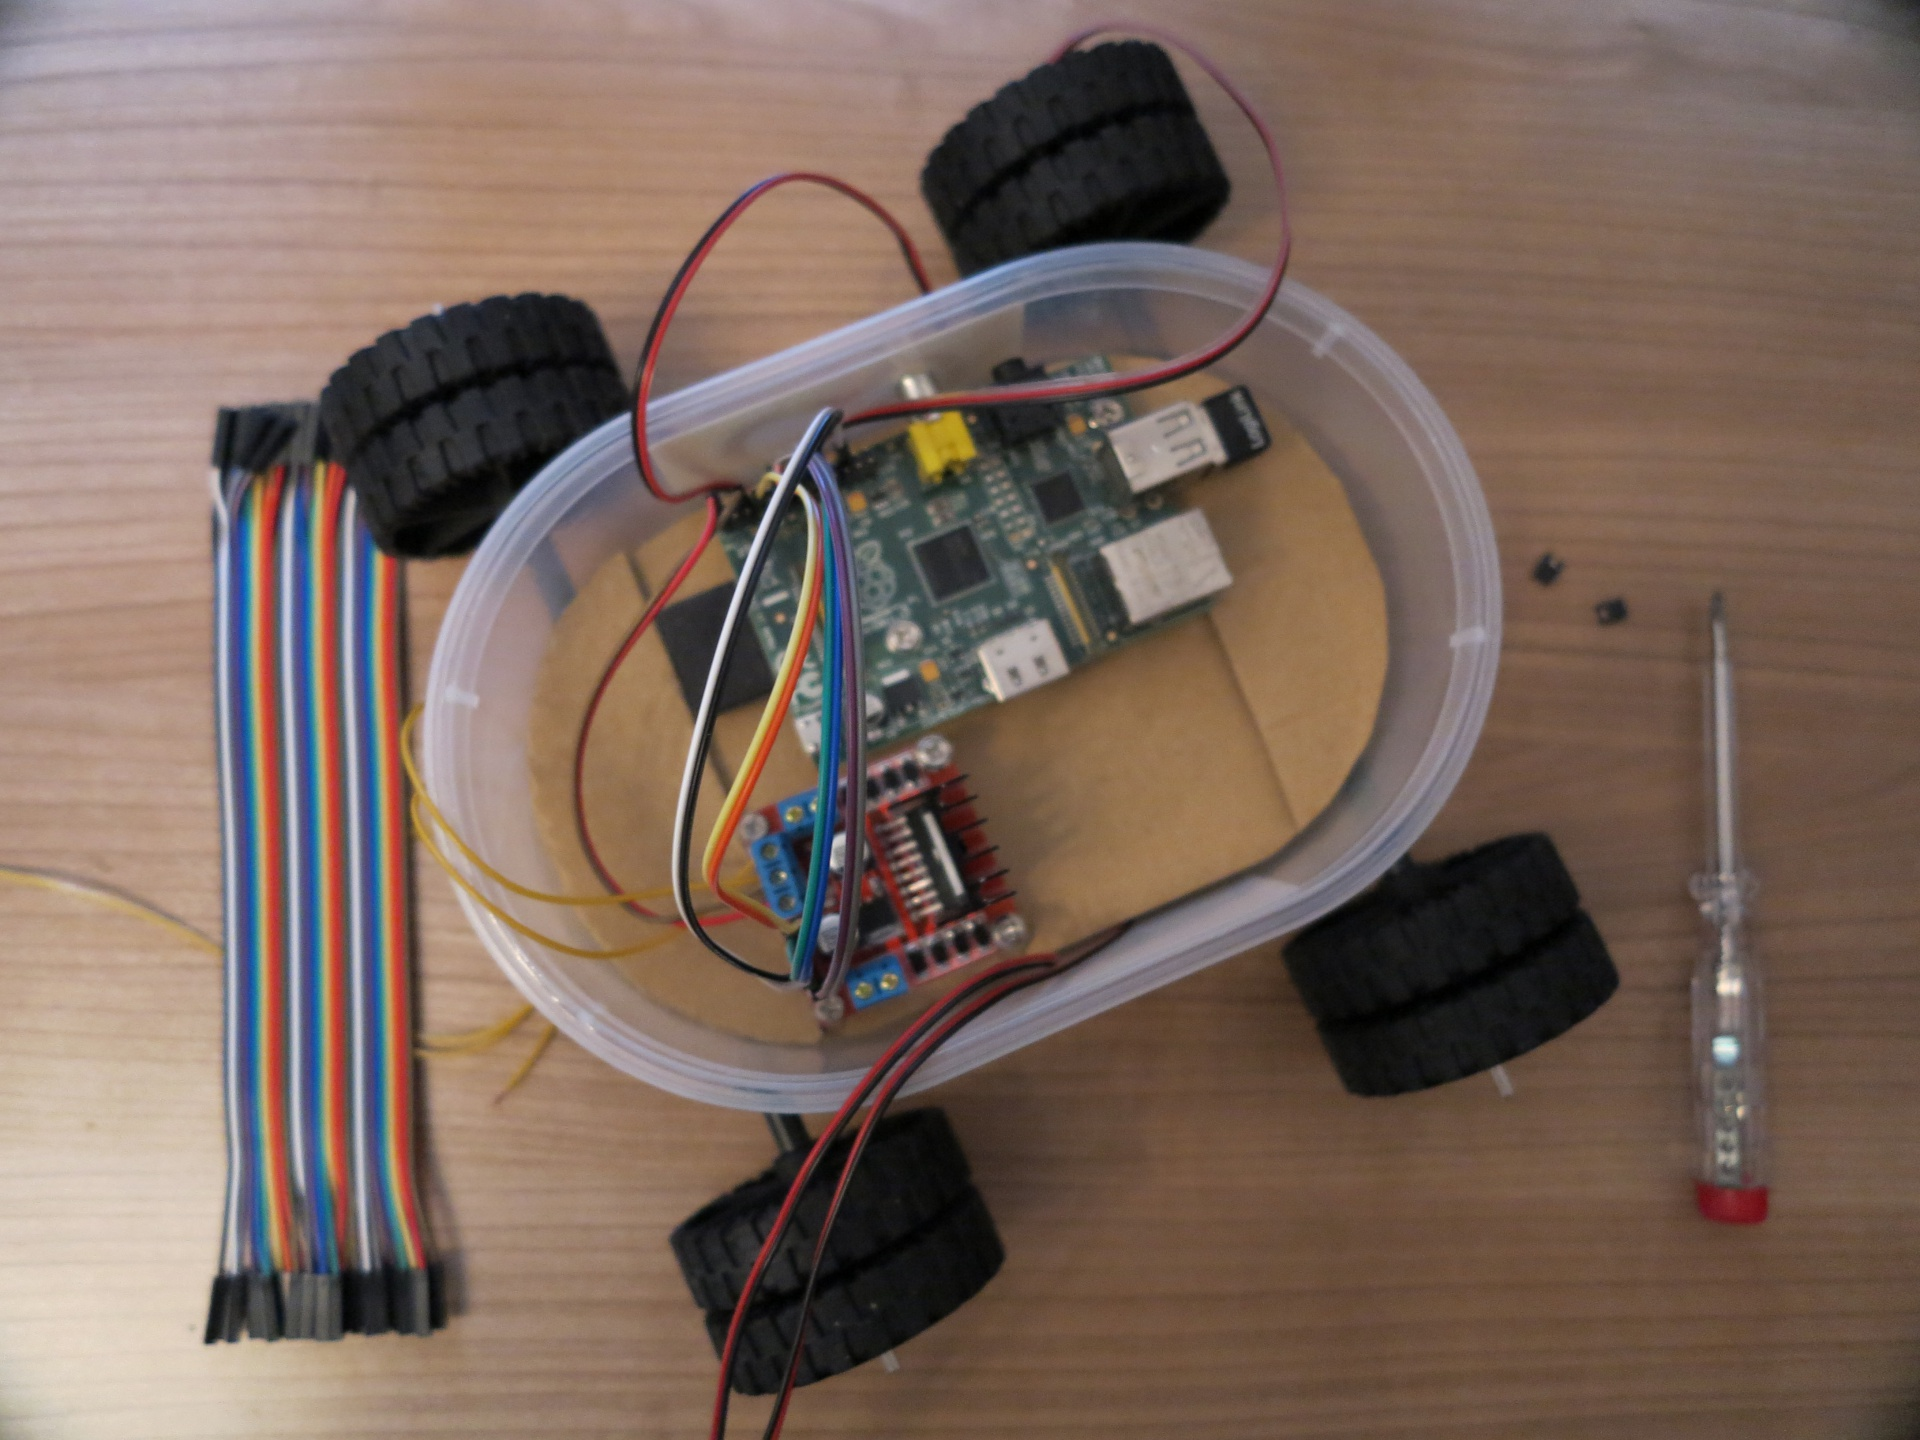 Raspberry Pi WIFI radio controlled rc vehicle – wiring - Raspberry ...